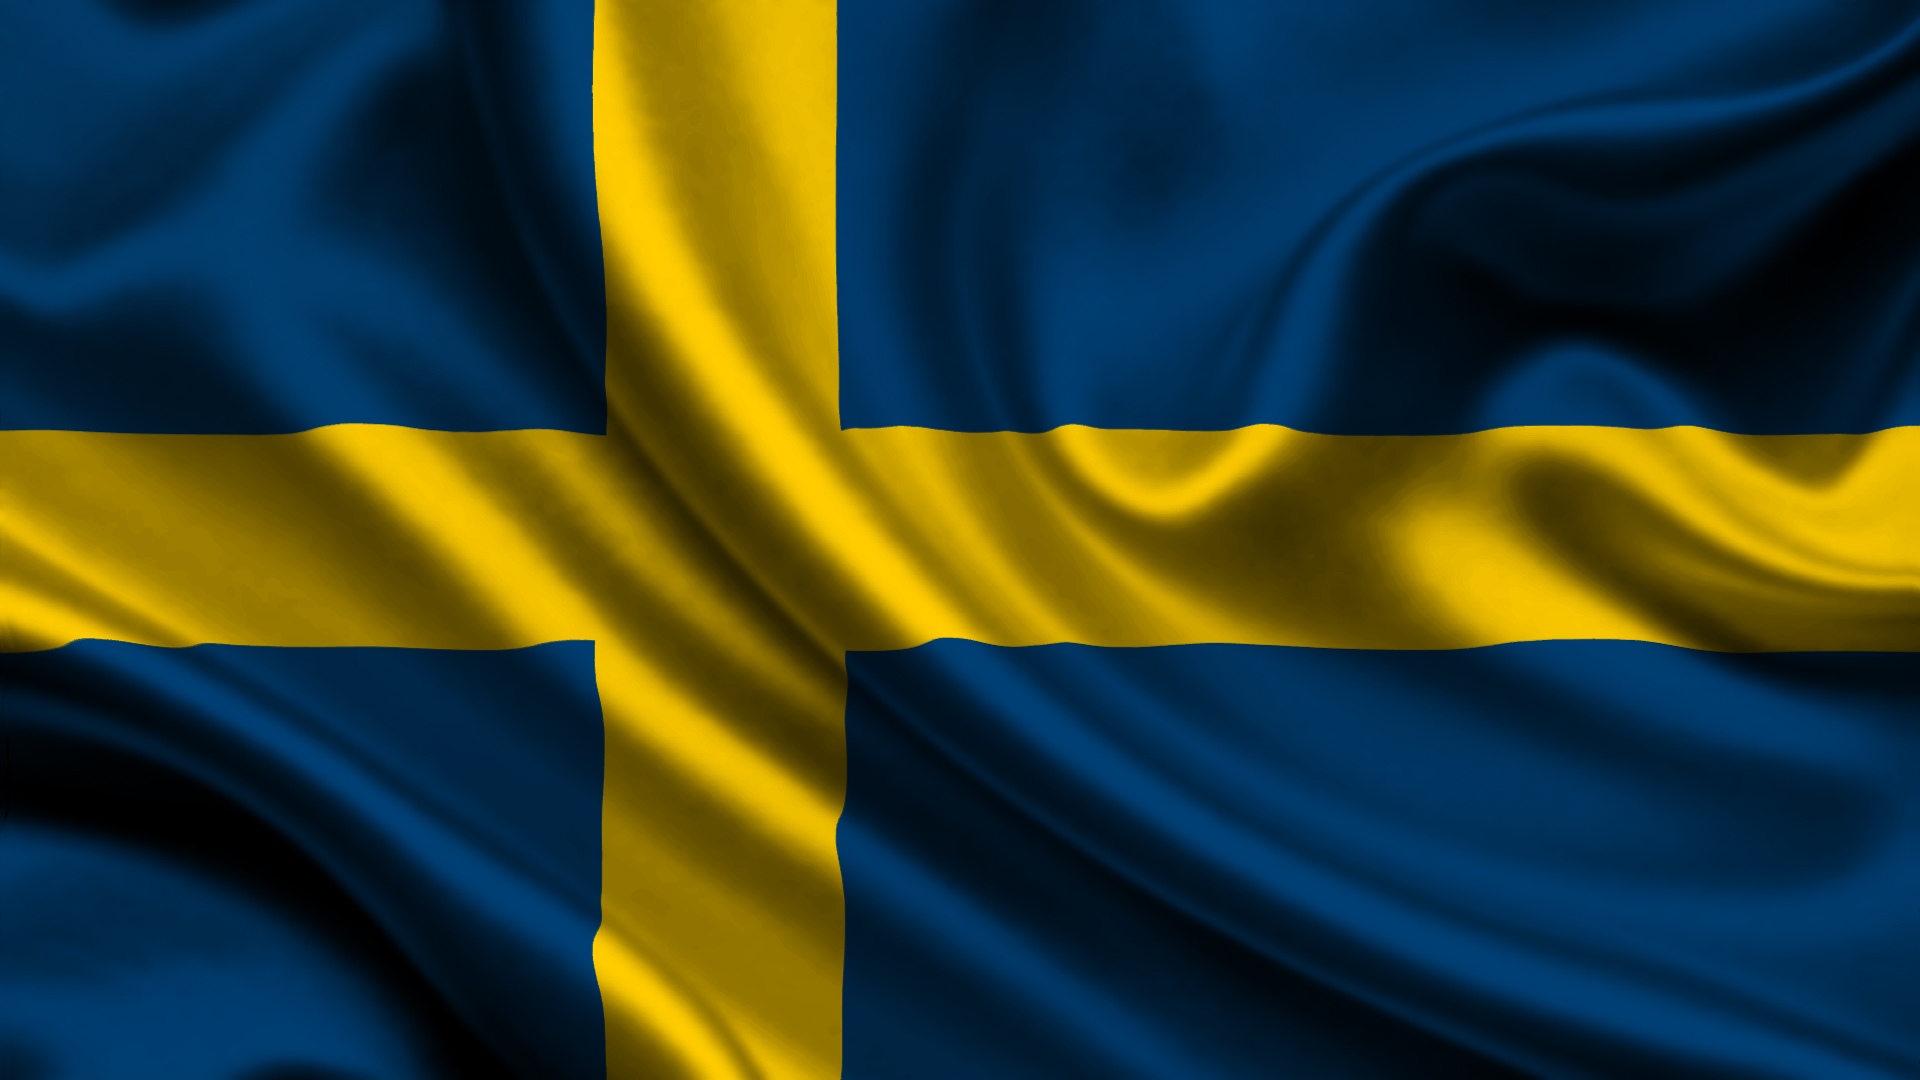 3 HD Sweden Flag Wallpapers 1920x1080 59096 KB 1920x1080